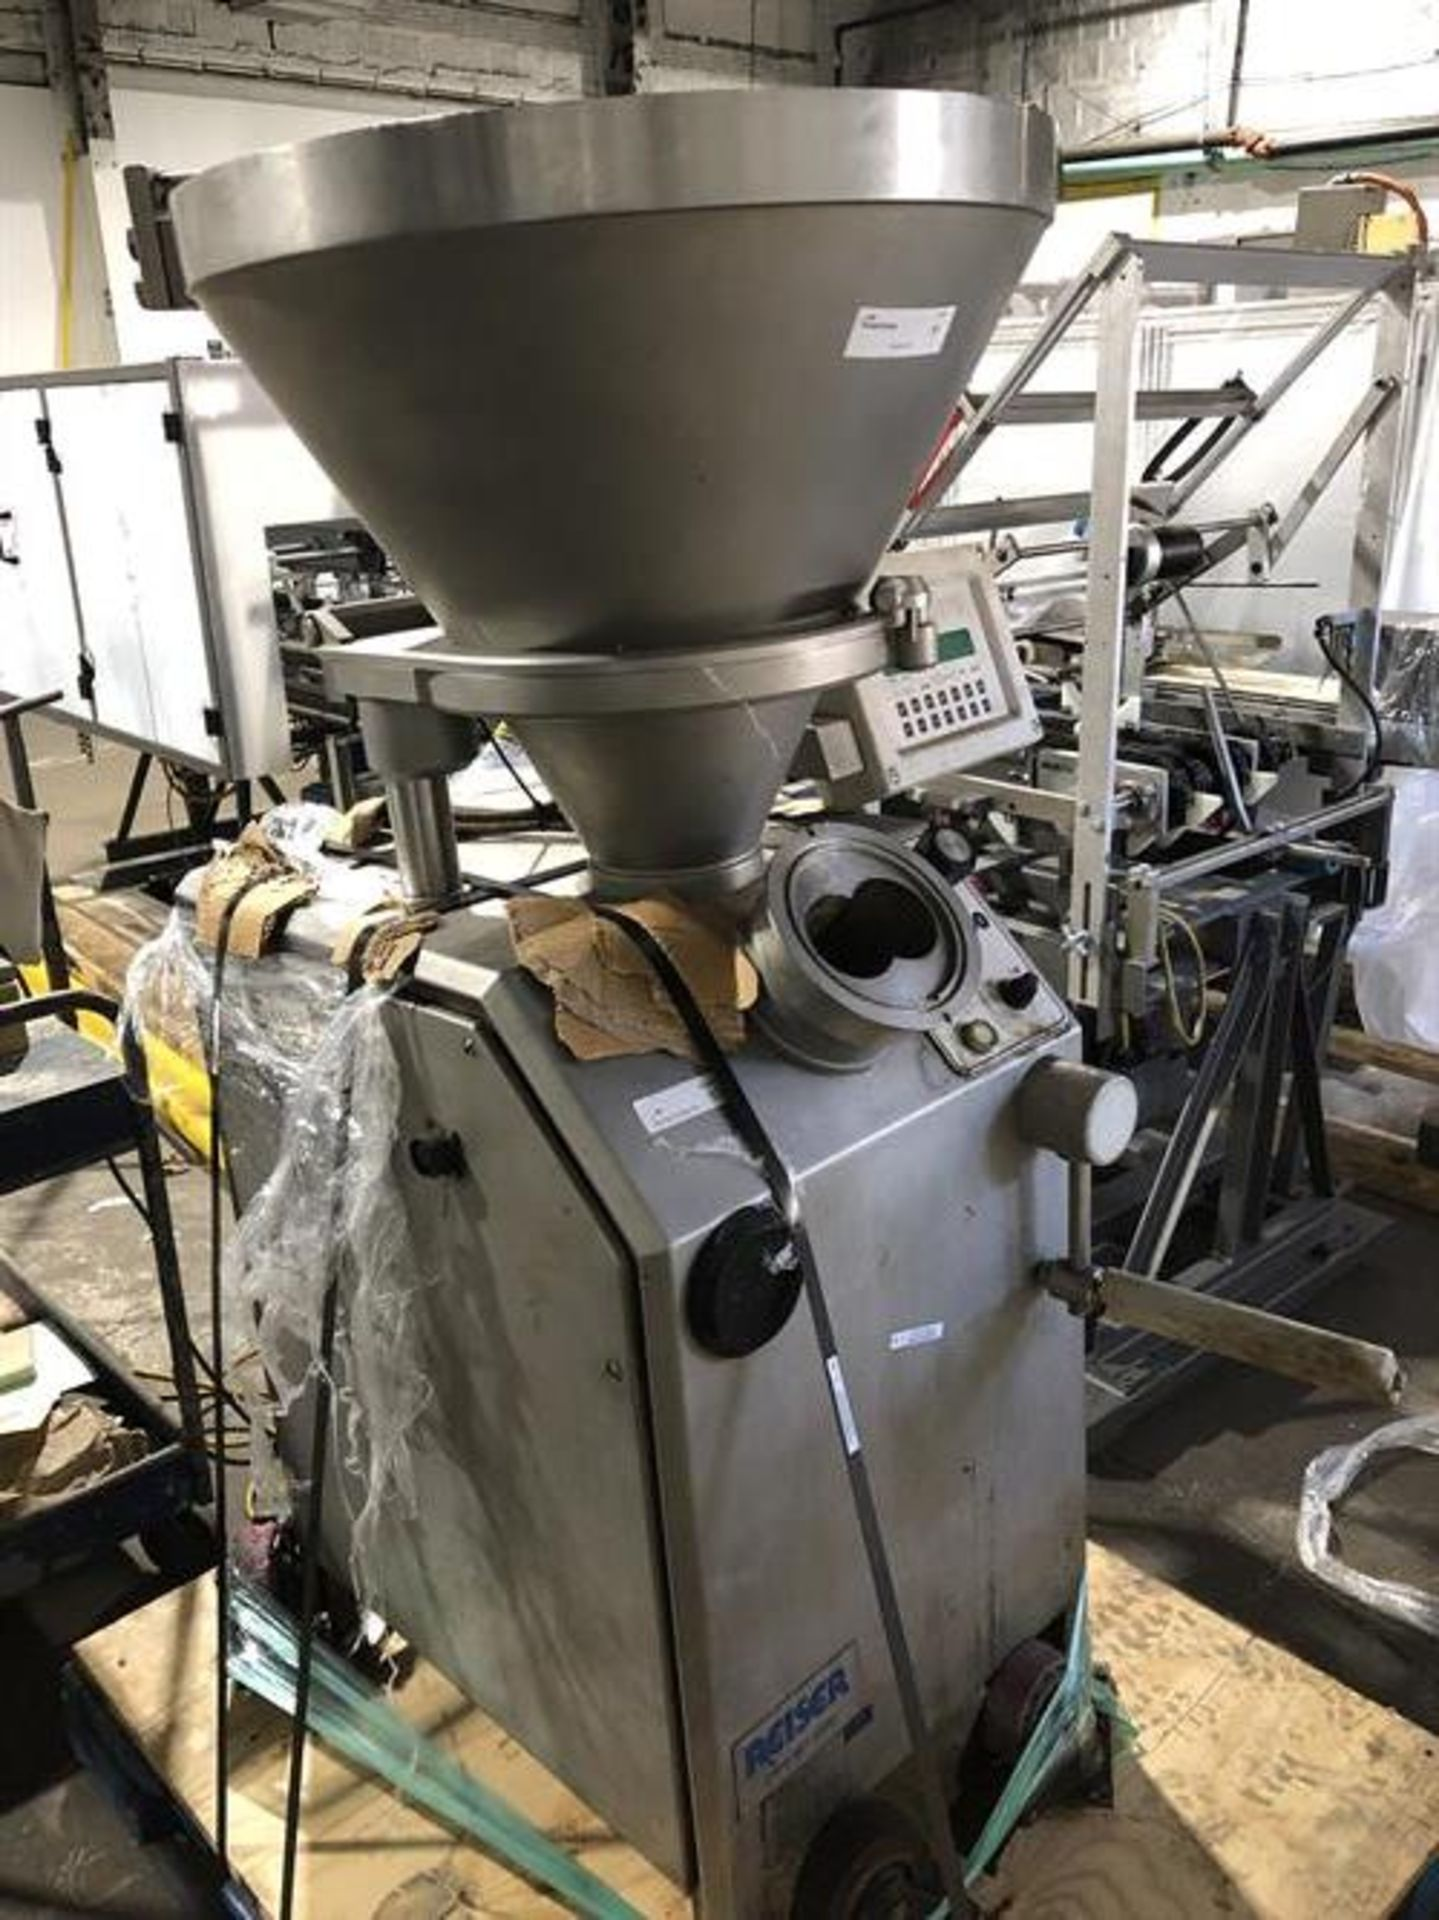 Vemag Robot 500 With PC 878 Portion Controls - Image 4 of 9